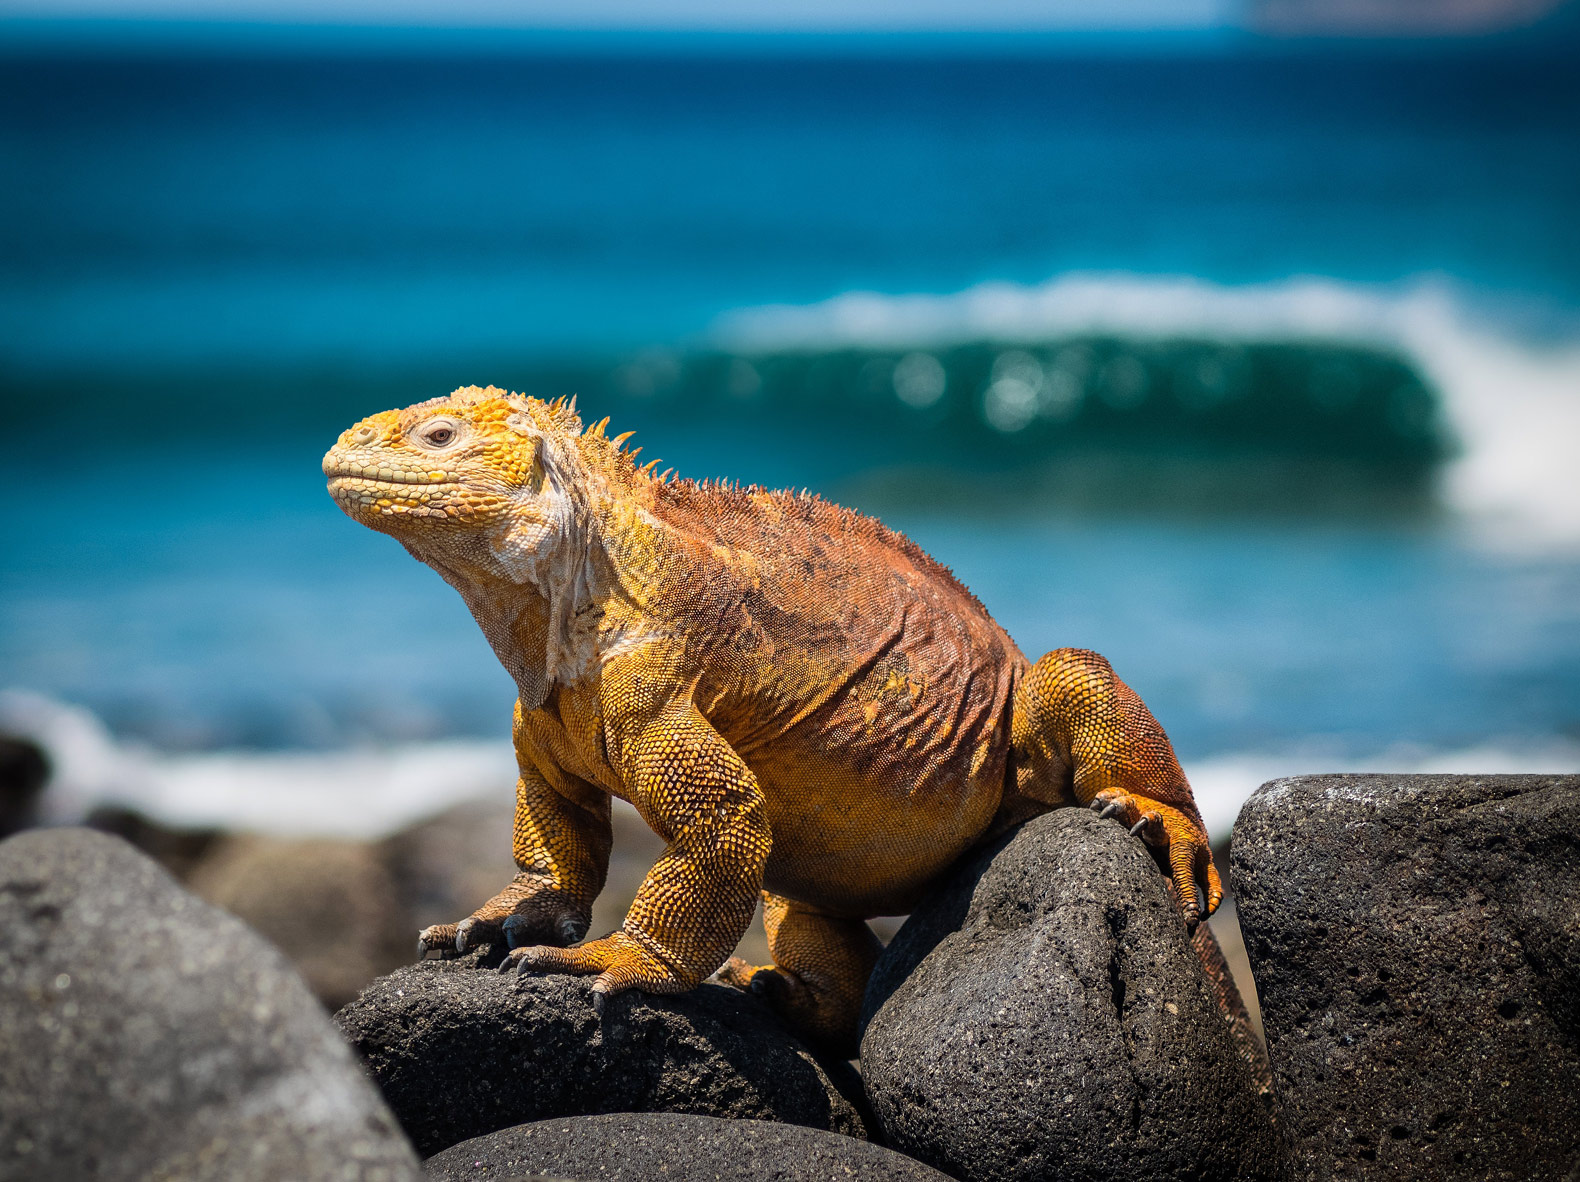 Iguanas reintroduced to island after 200 years